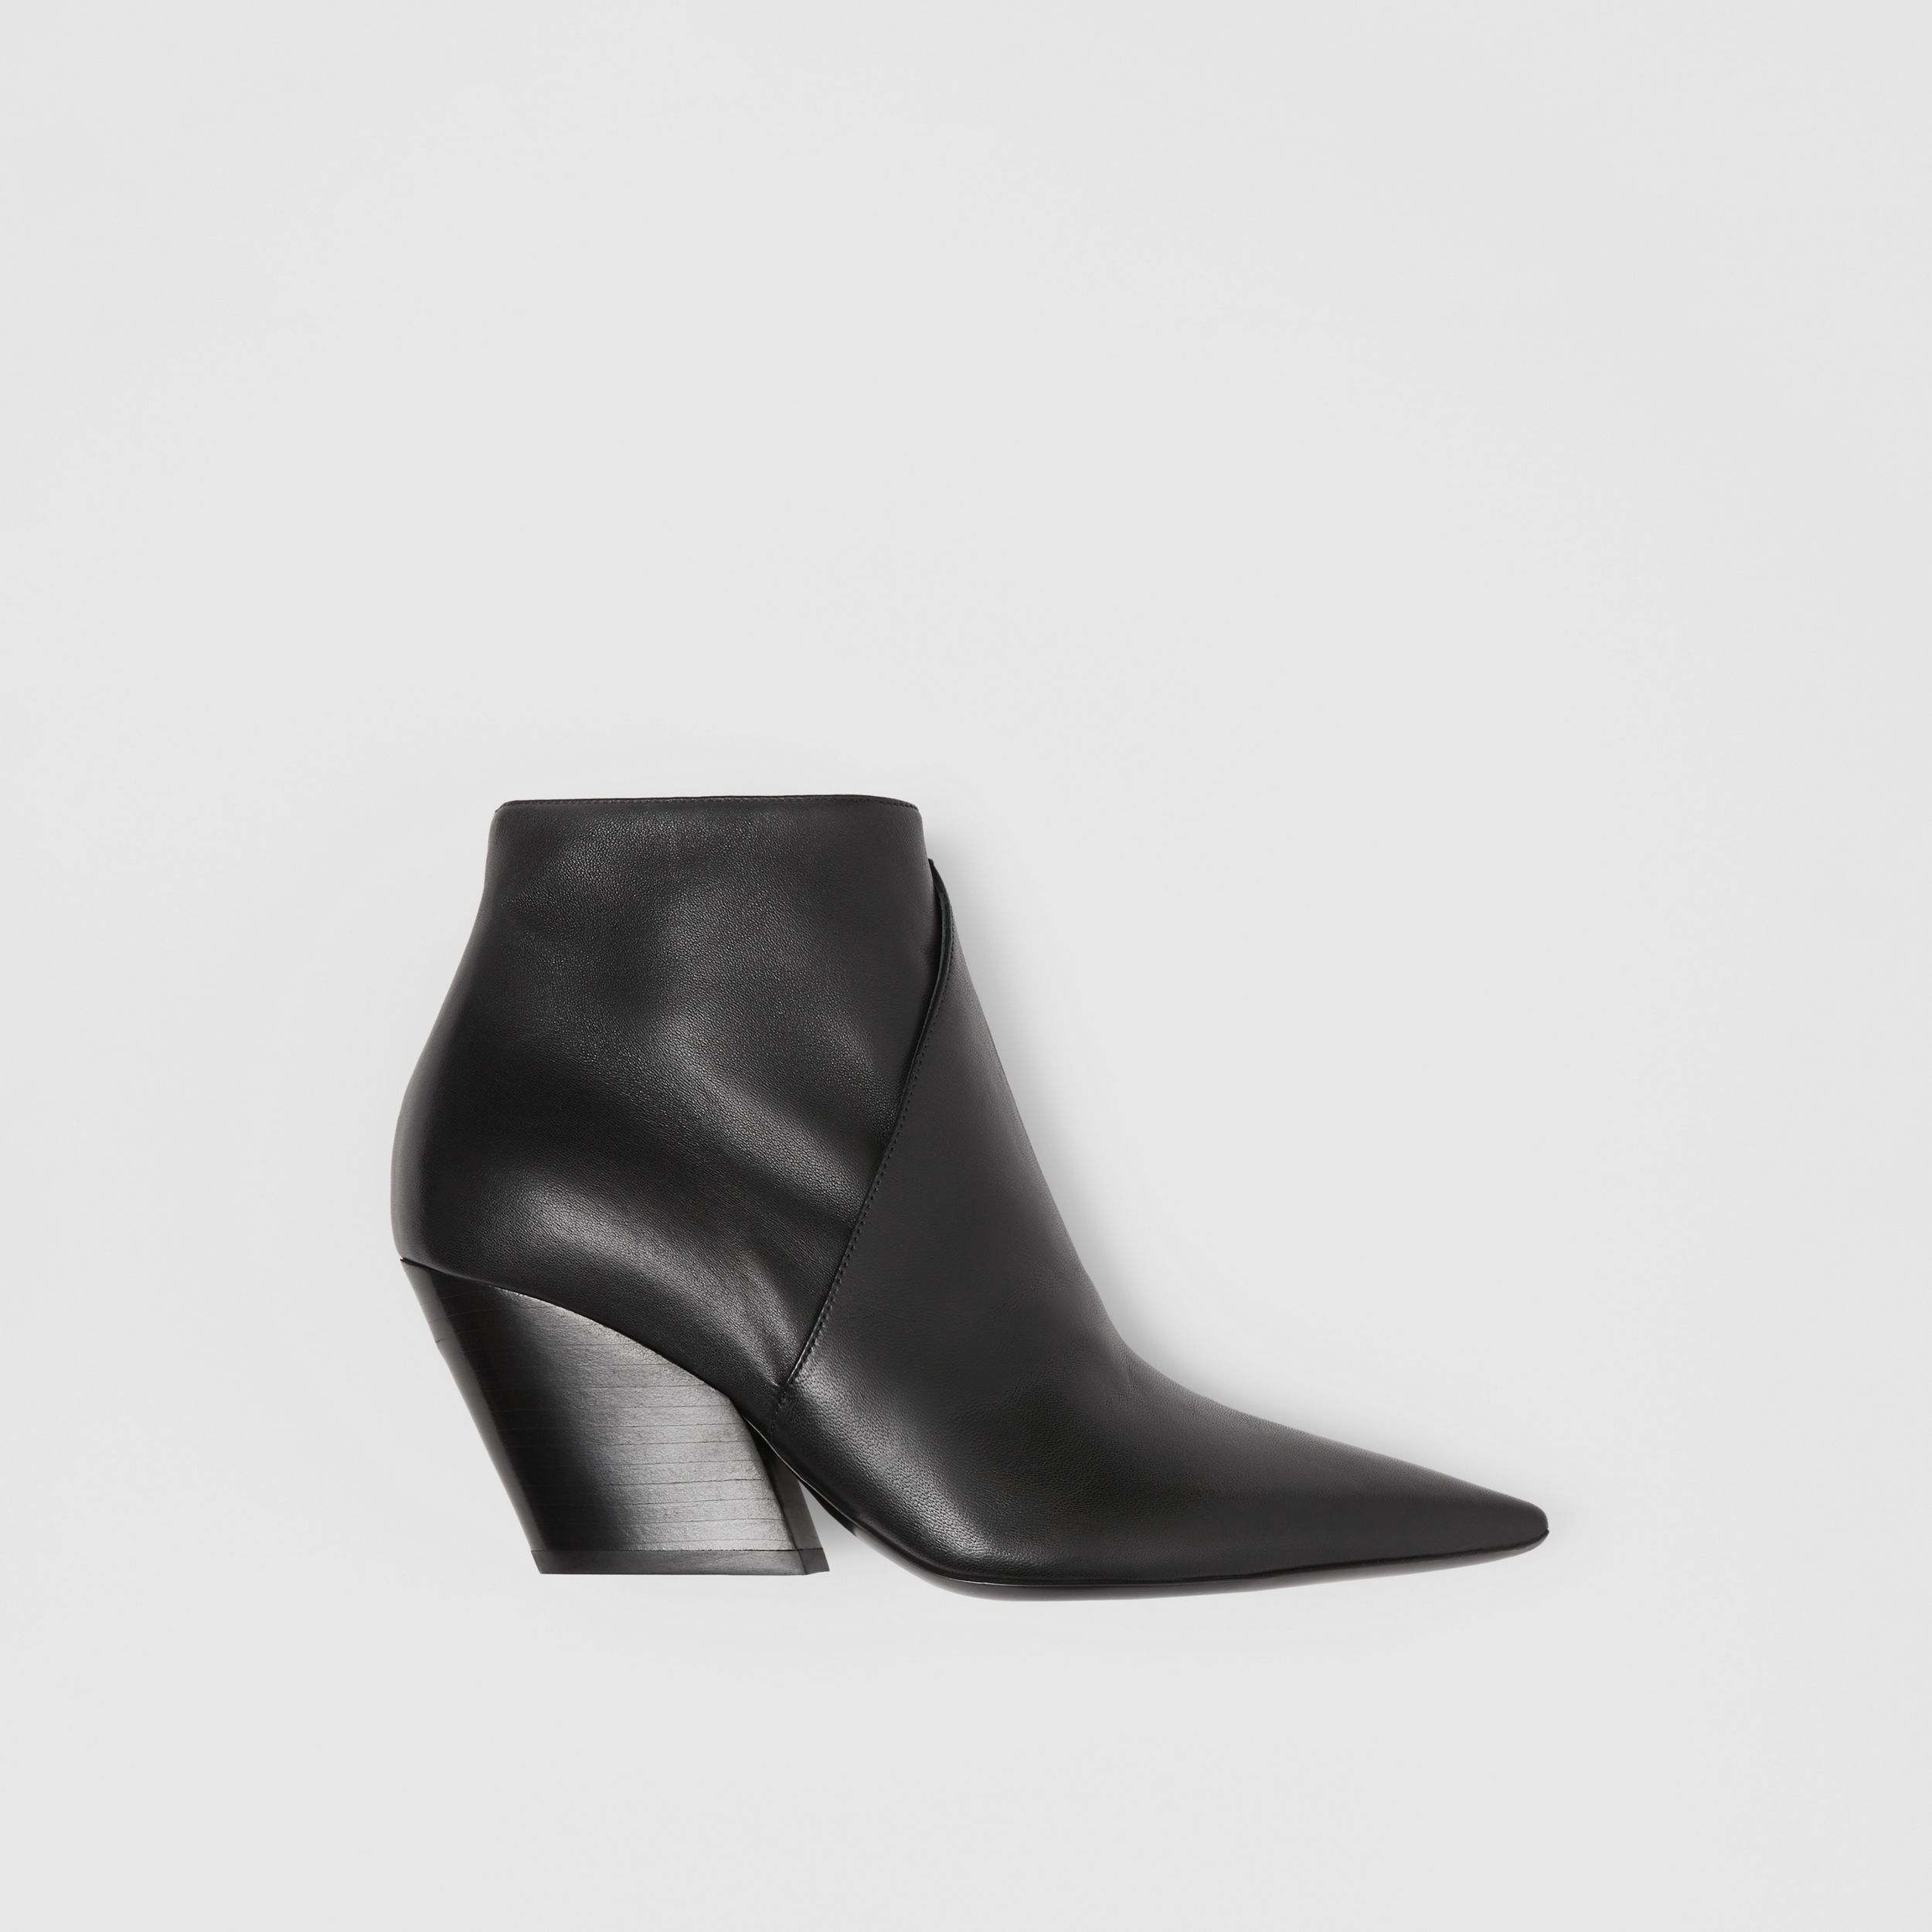 Leather Ankle Boots in Black - Women | Burberry United States - 1